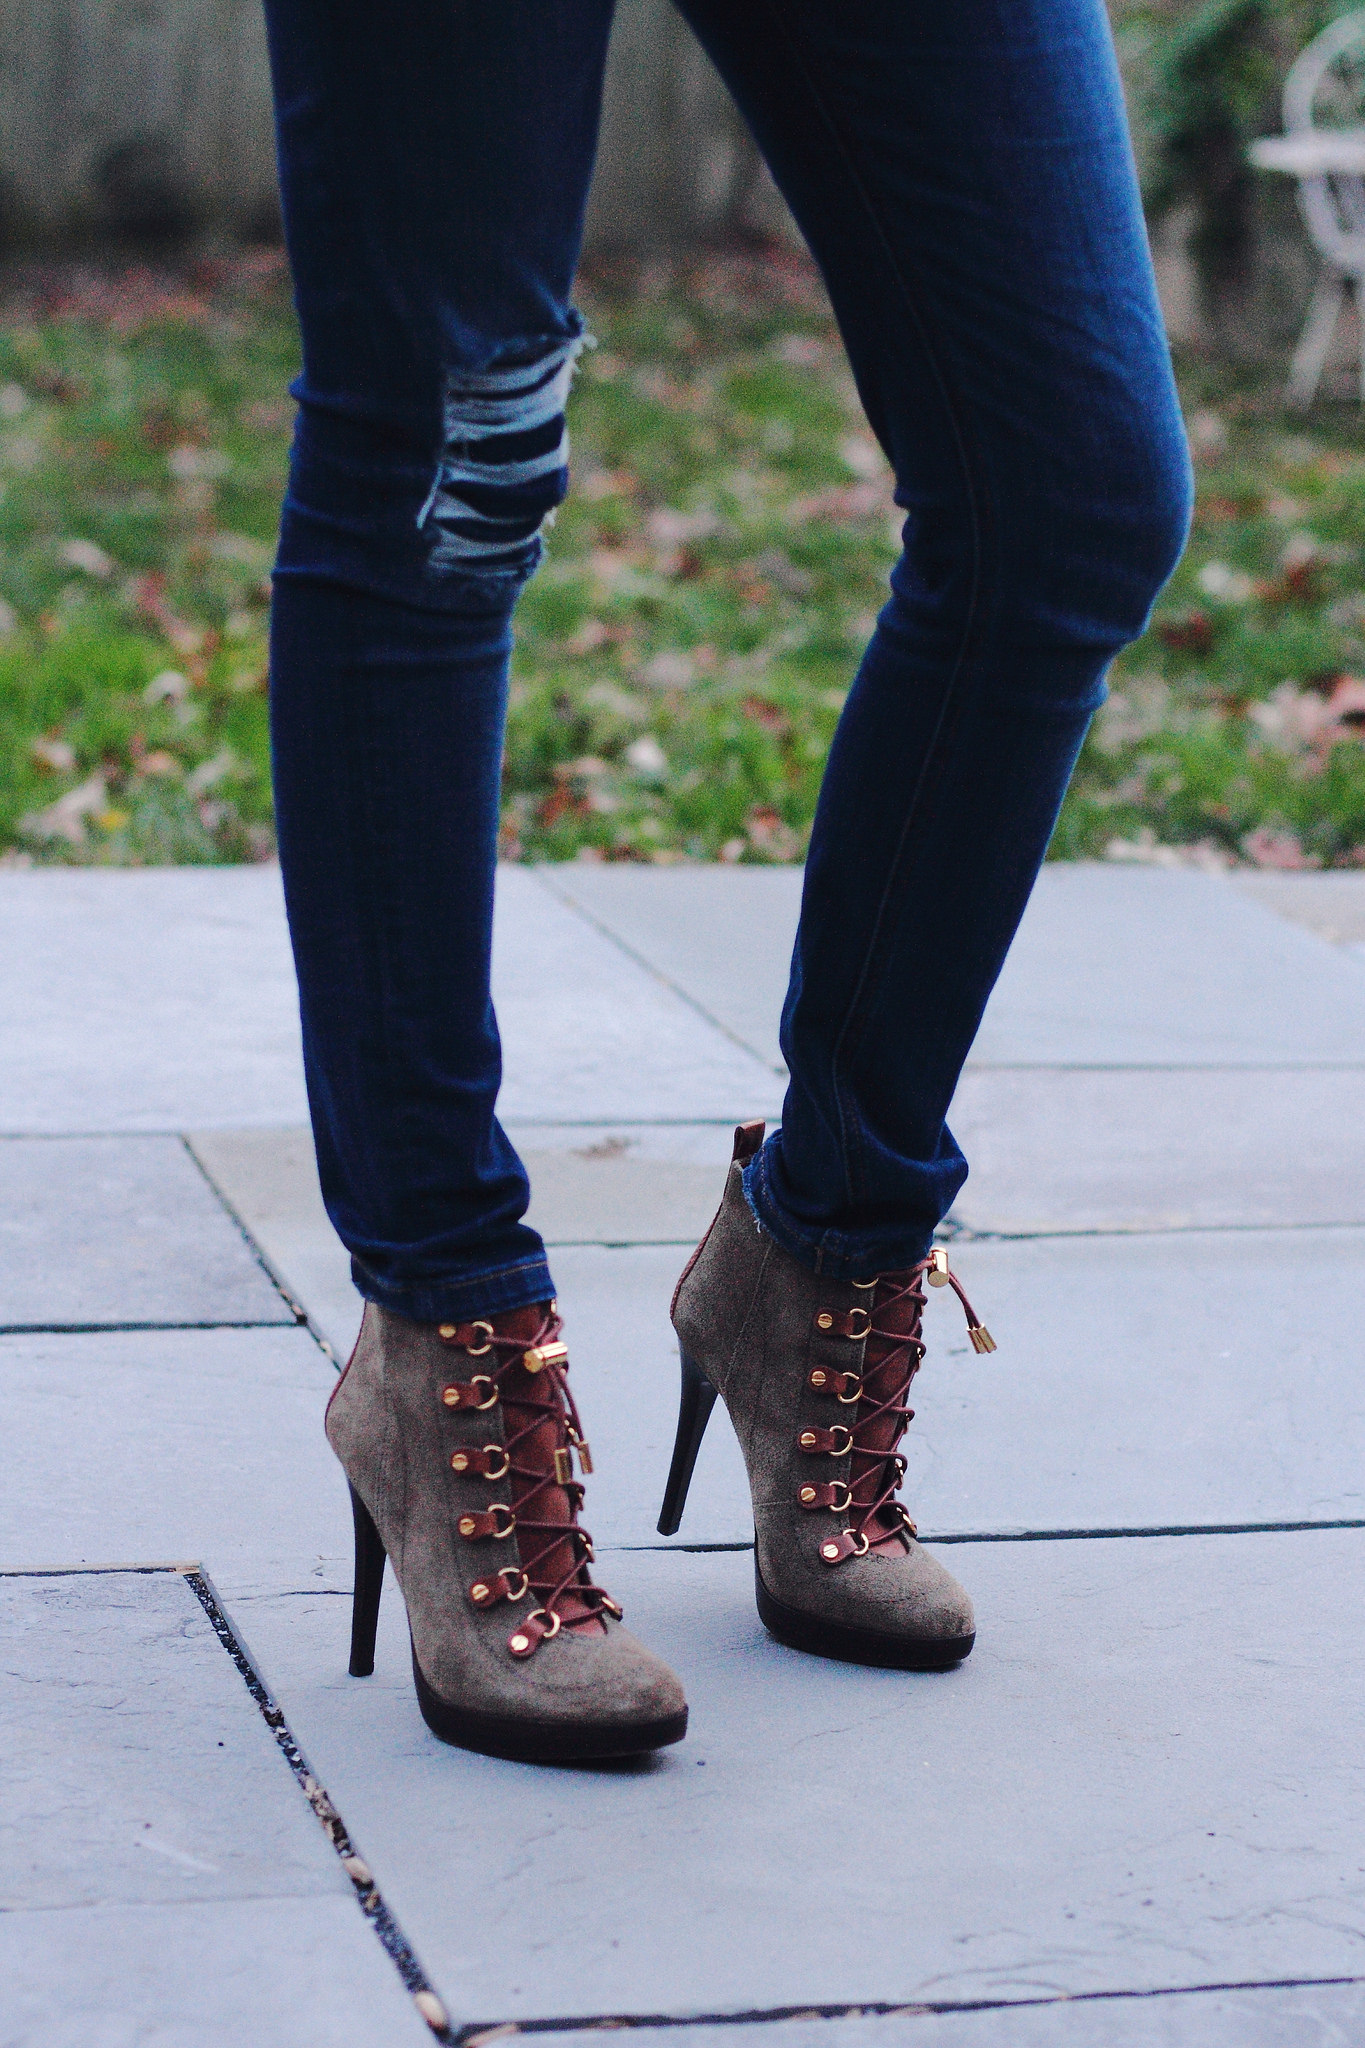 Tory Burch lace-up boots